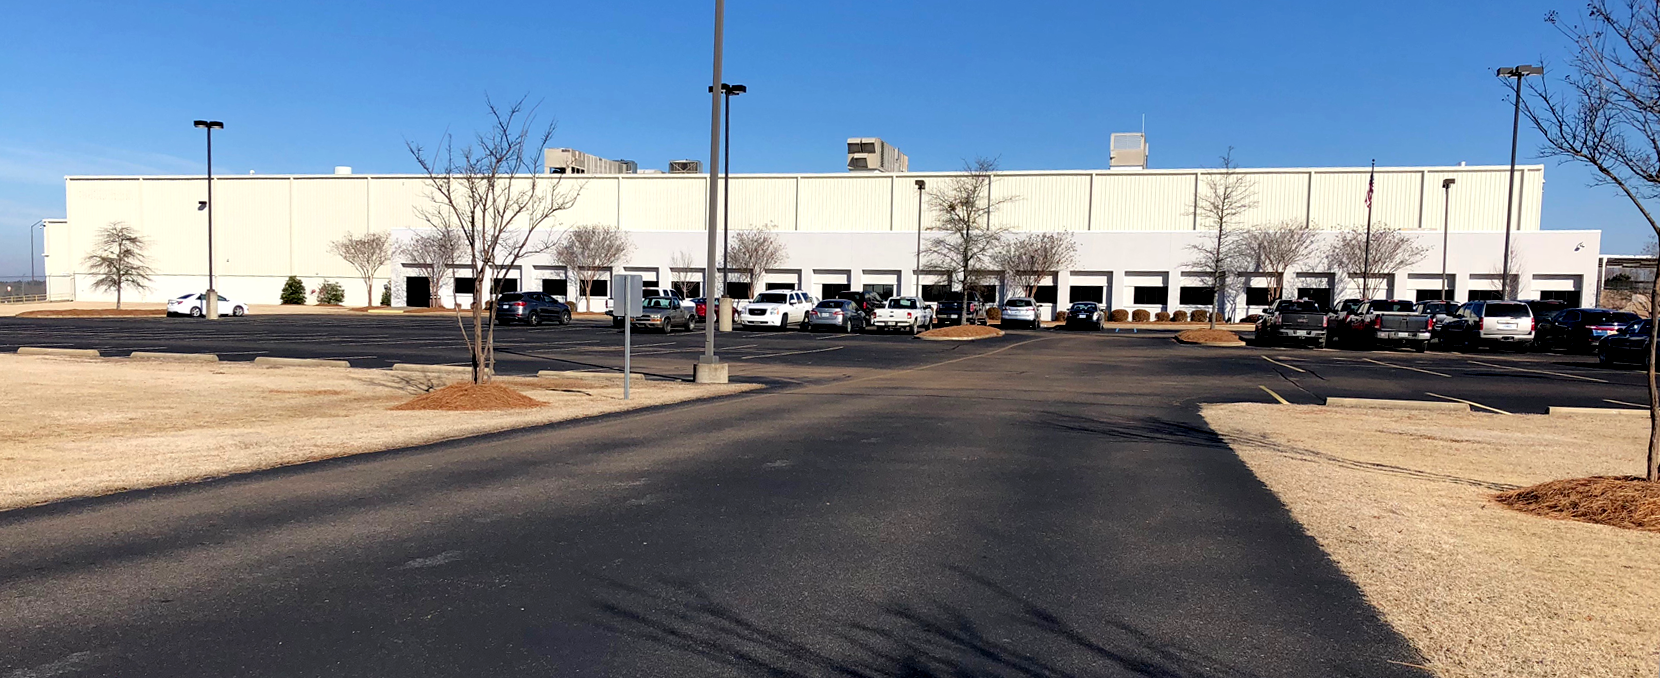 Oxford, Mississippi - 180,000 sq. ft.Large Diameter Cold Form and Machining Facility